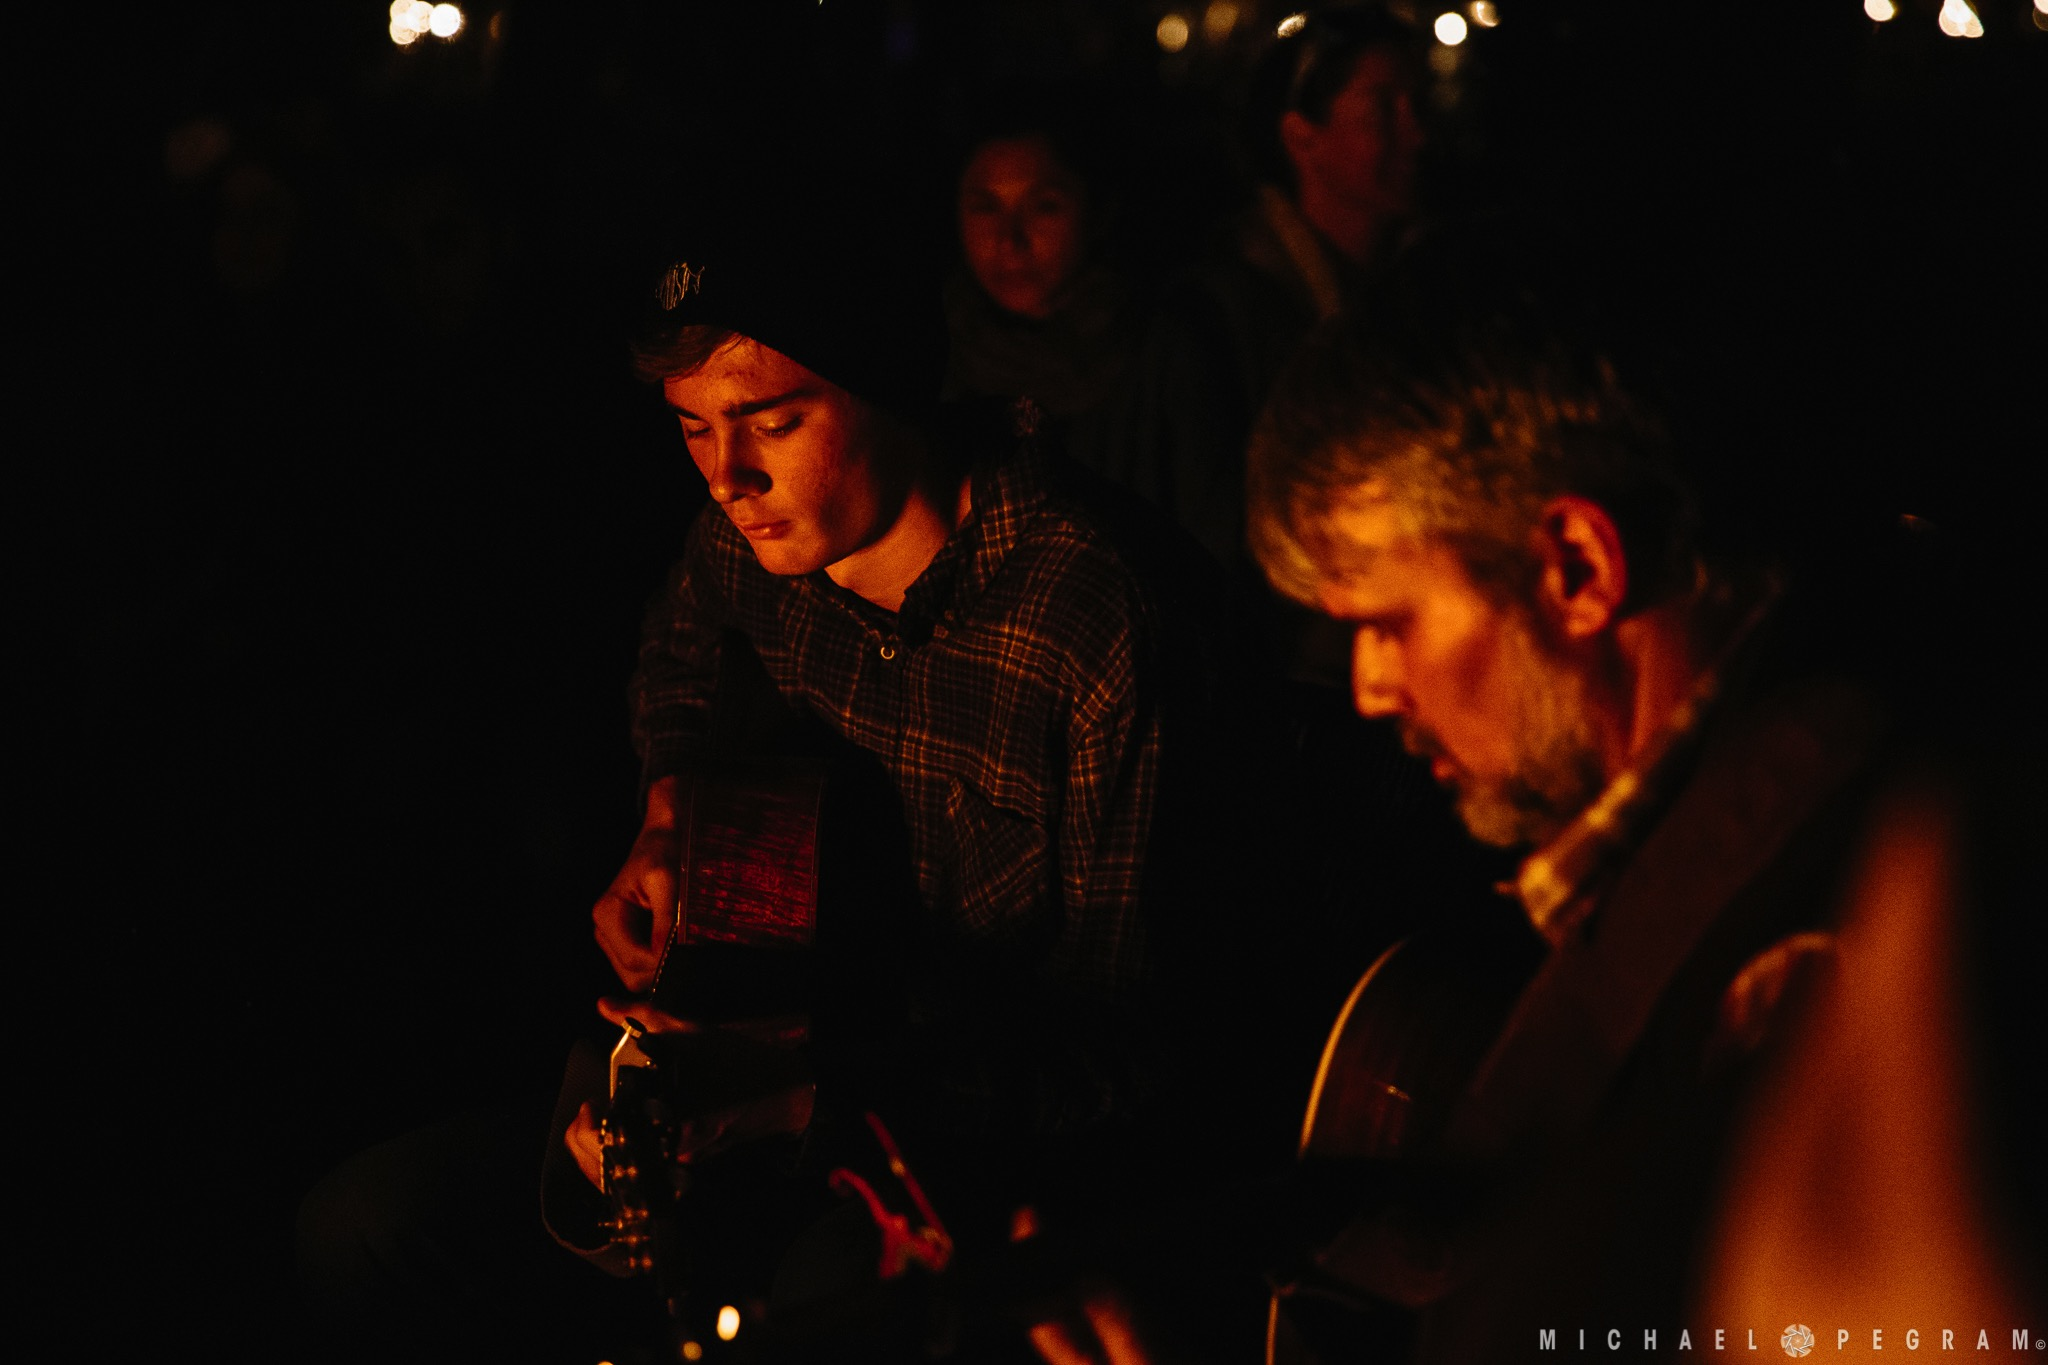 Kyle Ledson and Bo Carper hosting the Campfire Jam at Camp Deep End 2018.  Photo by Michael Pegram